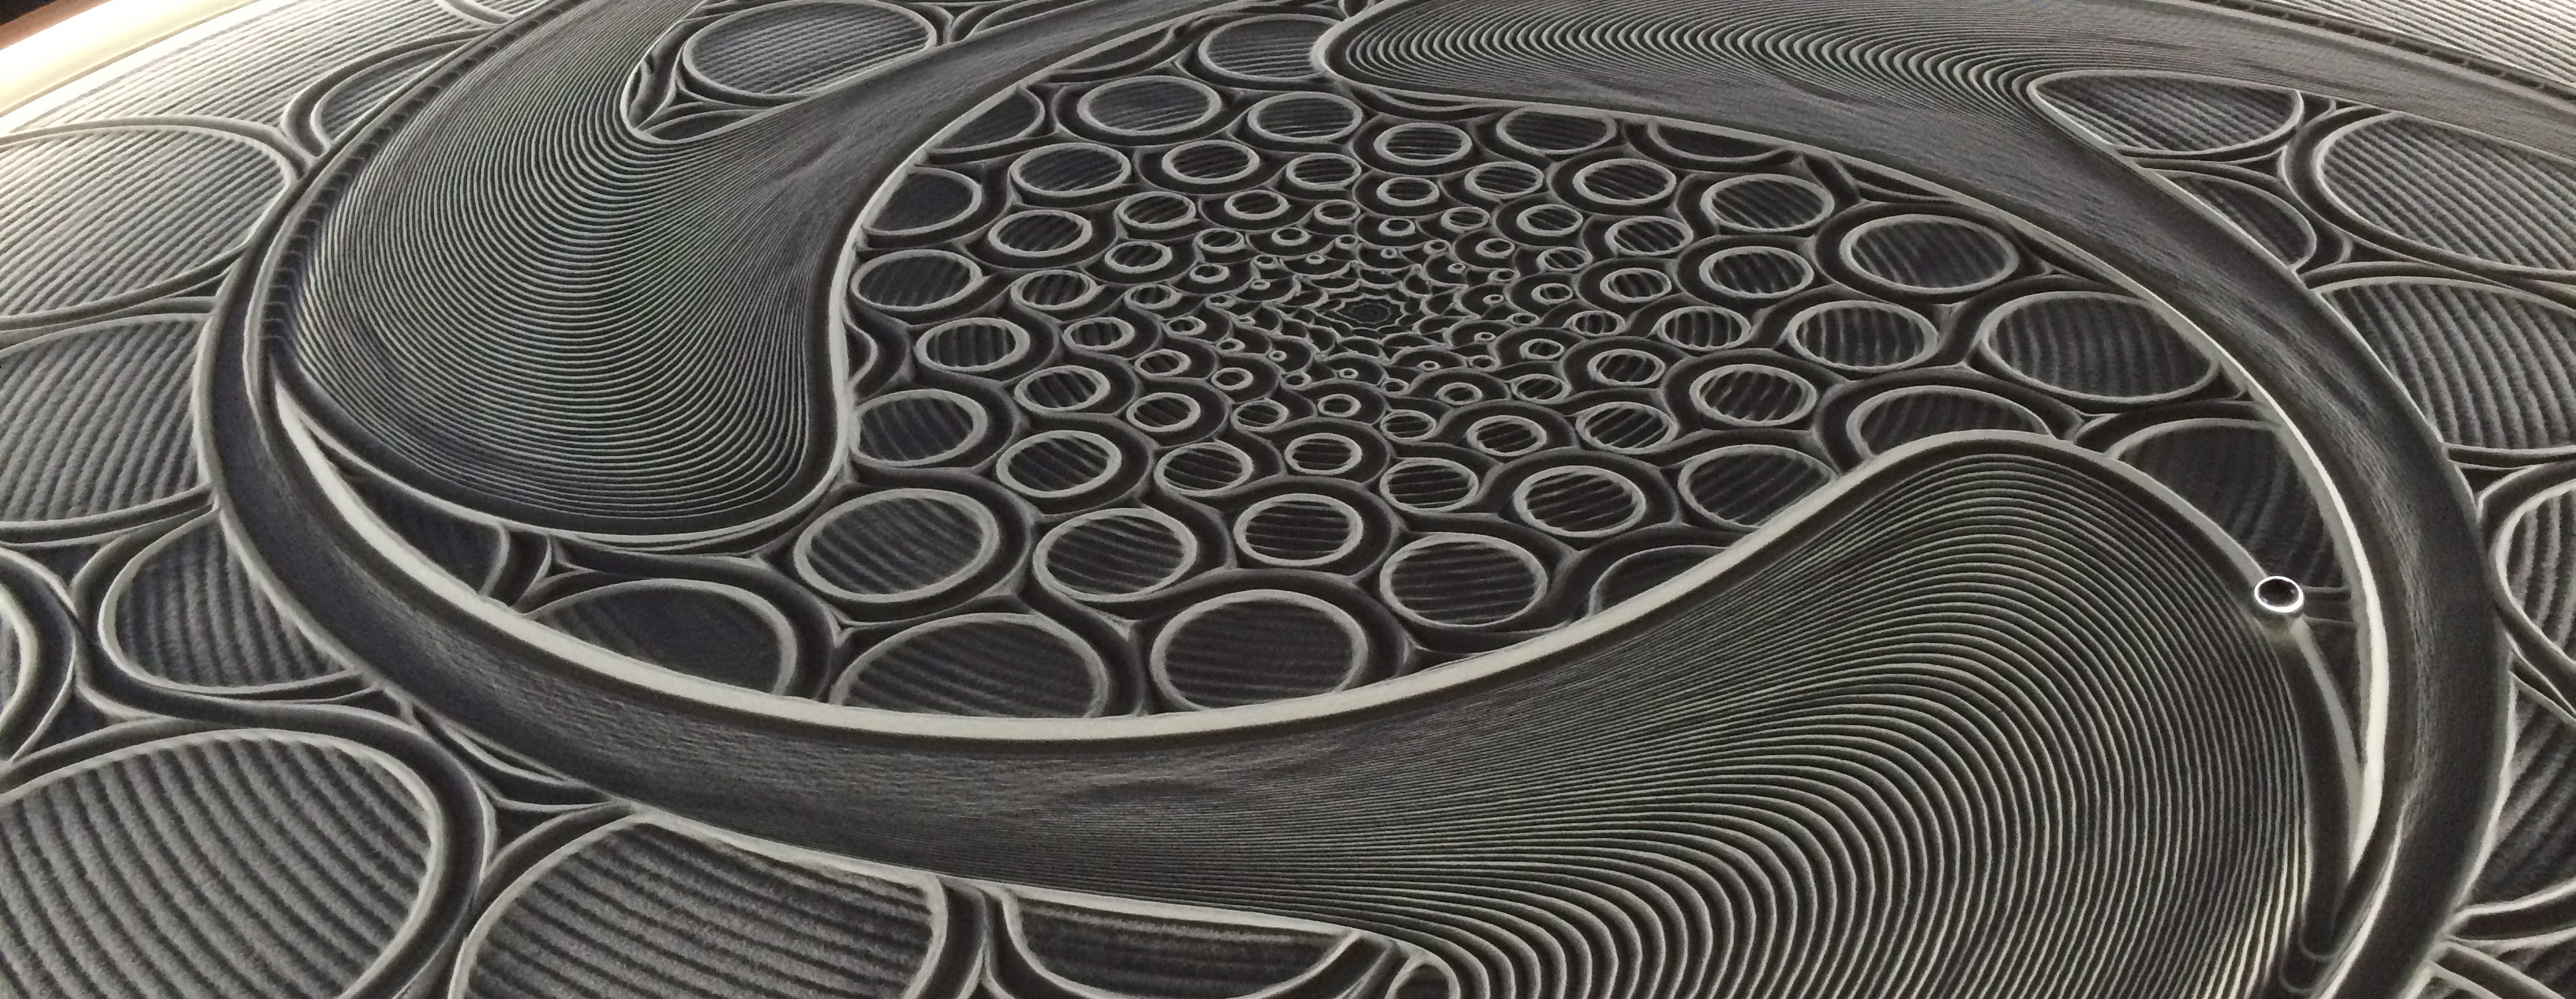 Robotic Table Art Sisyphus Creates Sand Drawings By Itself